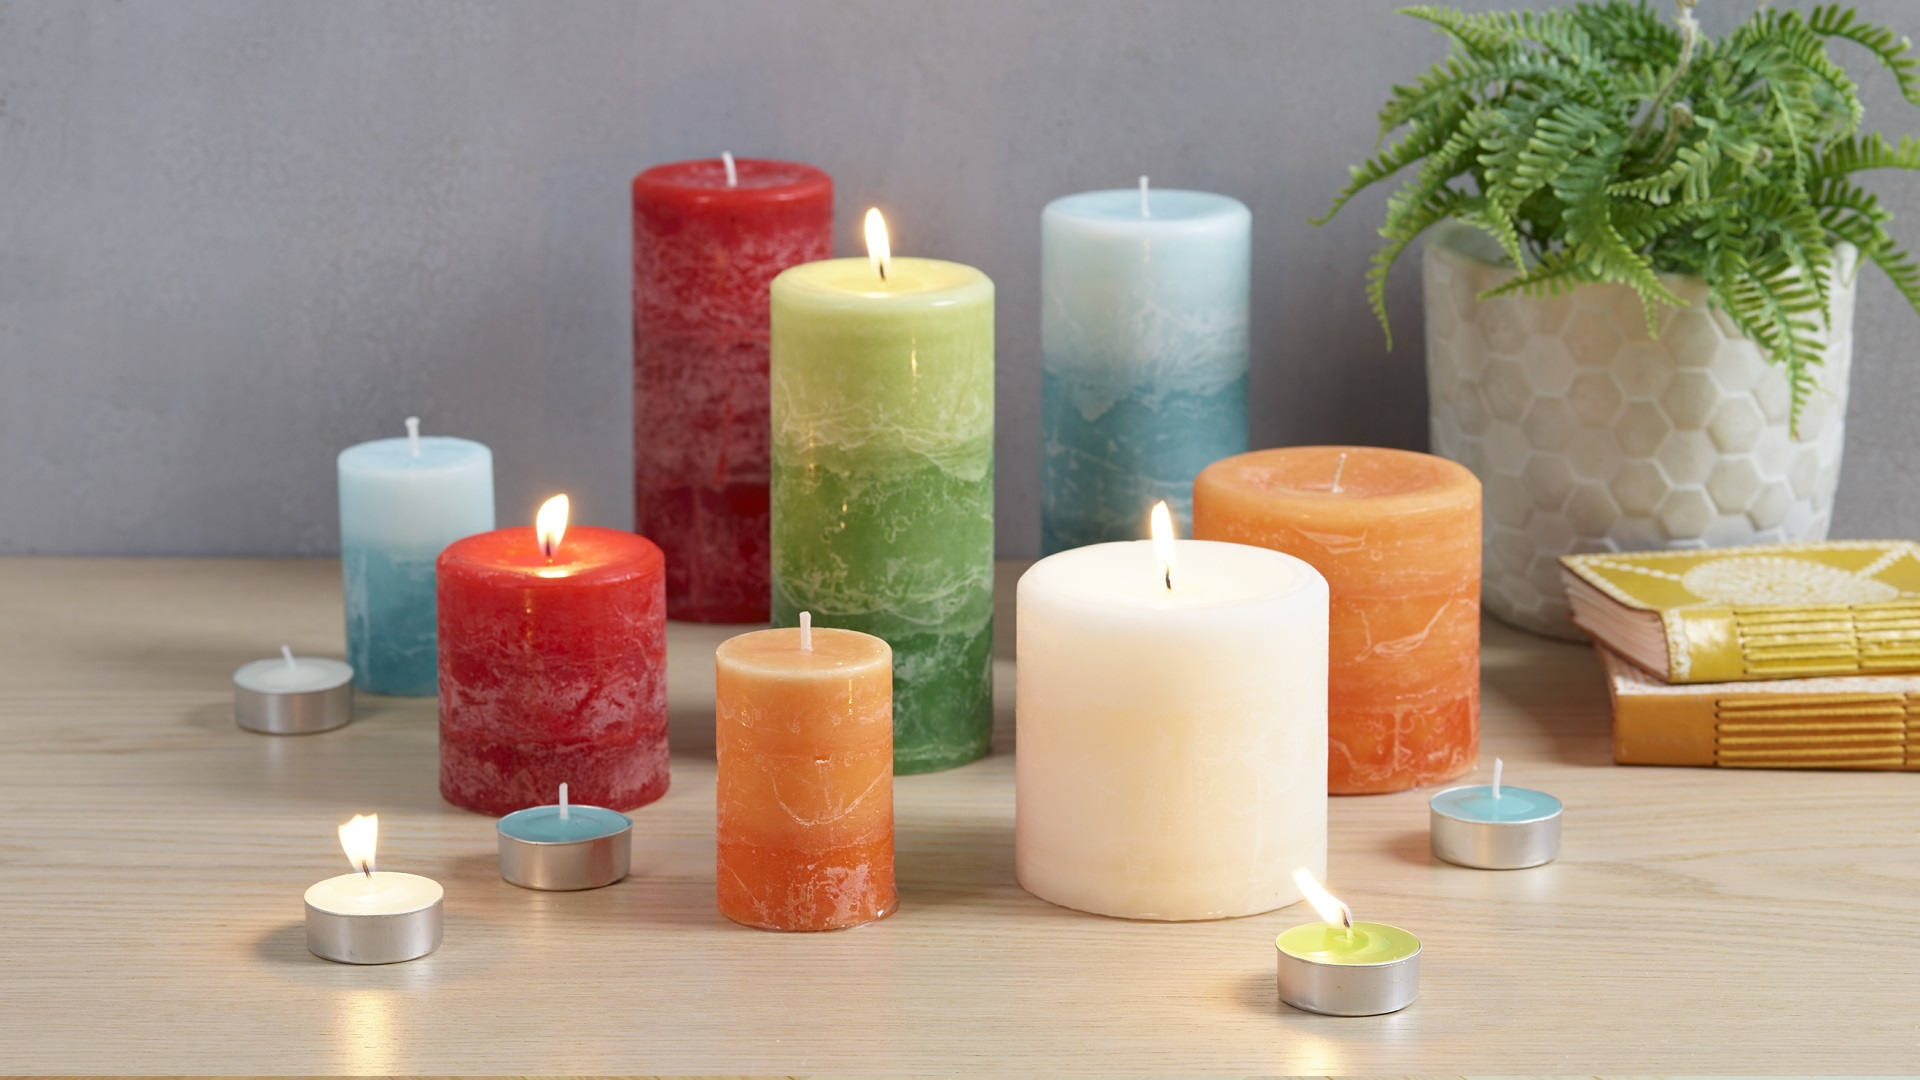 Matching Candles & Scents To Your Home